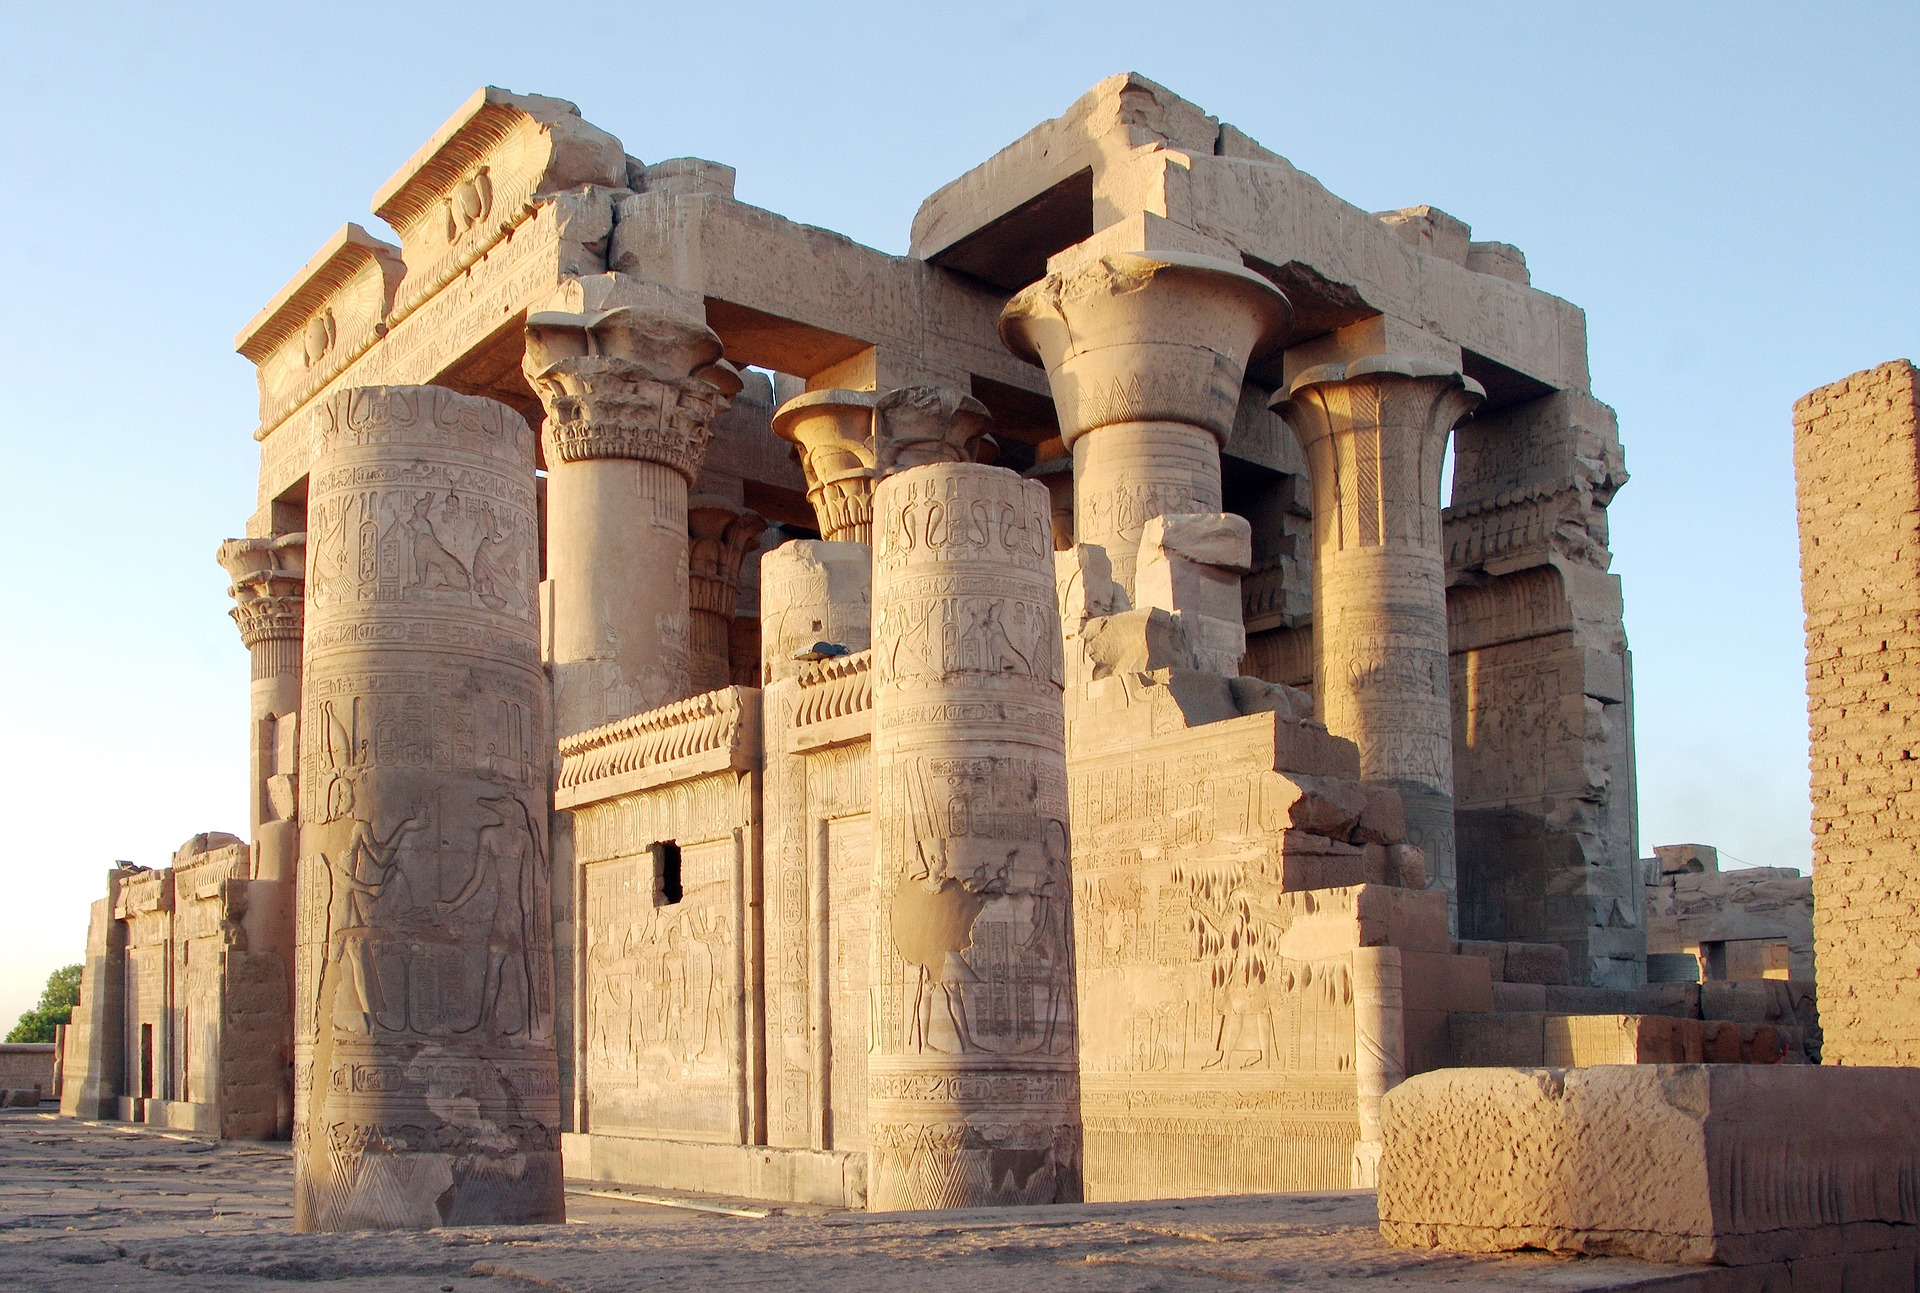 Wonders of Ancient Egypt - Temple of Kom-Ombo, Egypt